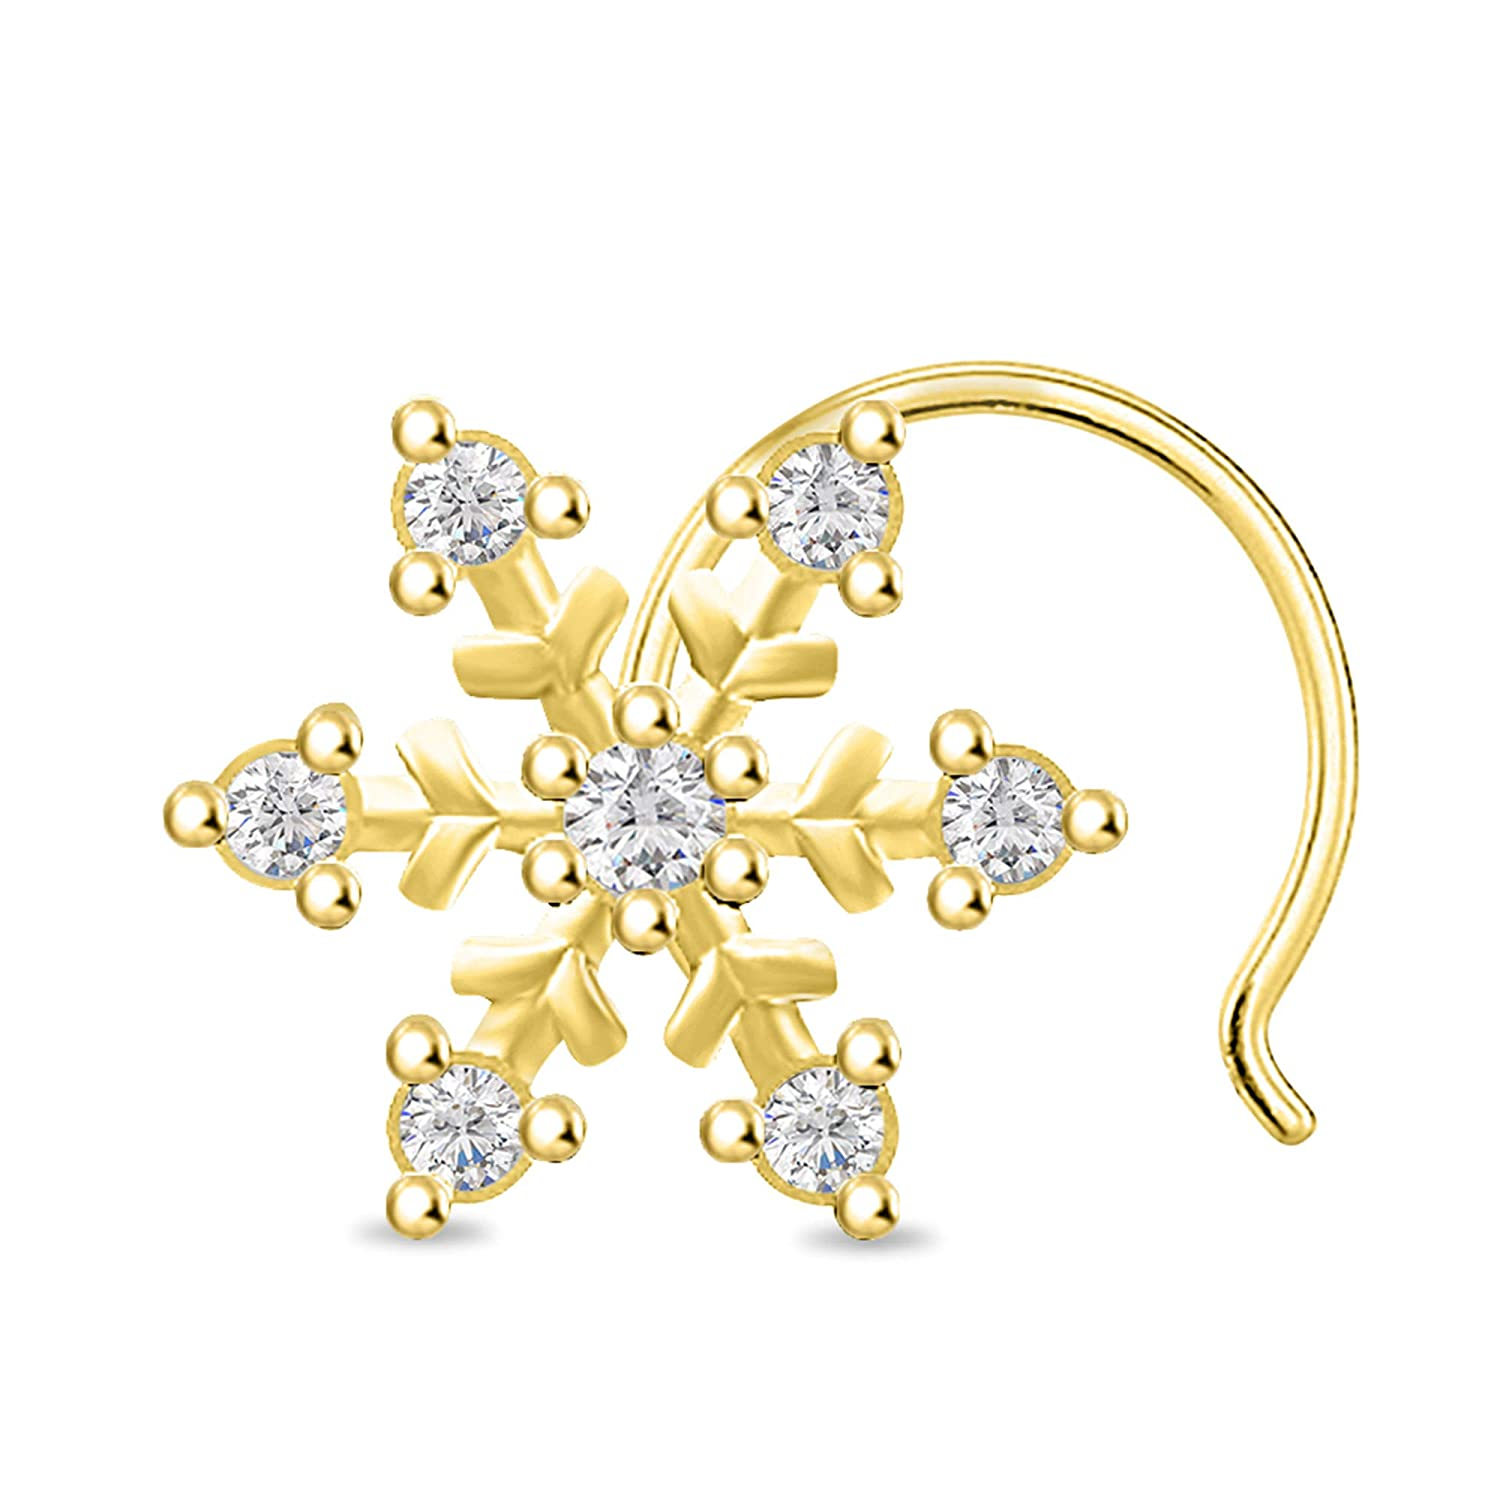 Diamond Scotch Round Cut White Cubic Zirconia Snowflake Nose Pin for Women's in 14k White Gold Over Body Piercing Jewelry SDNP105-WG